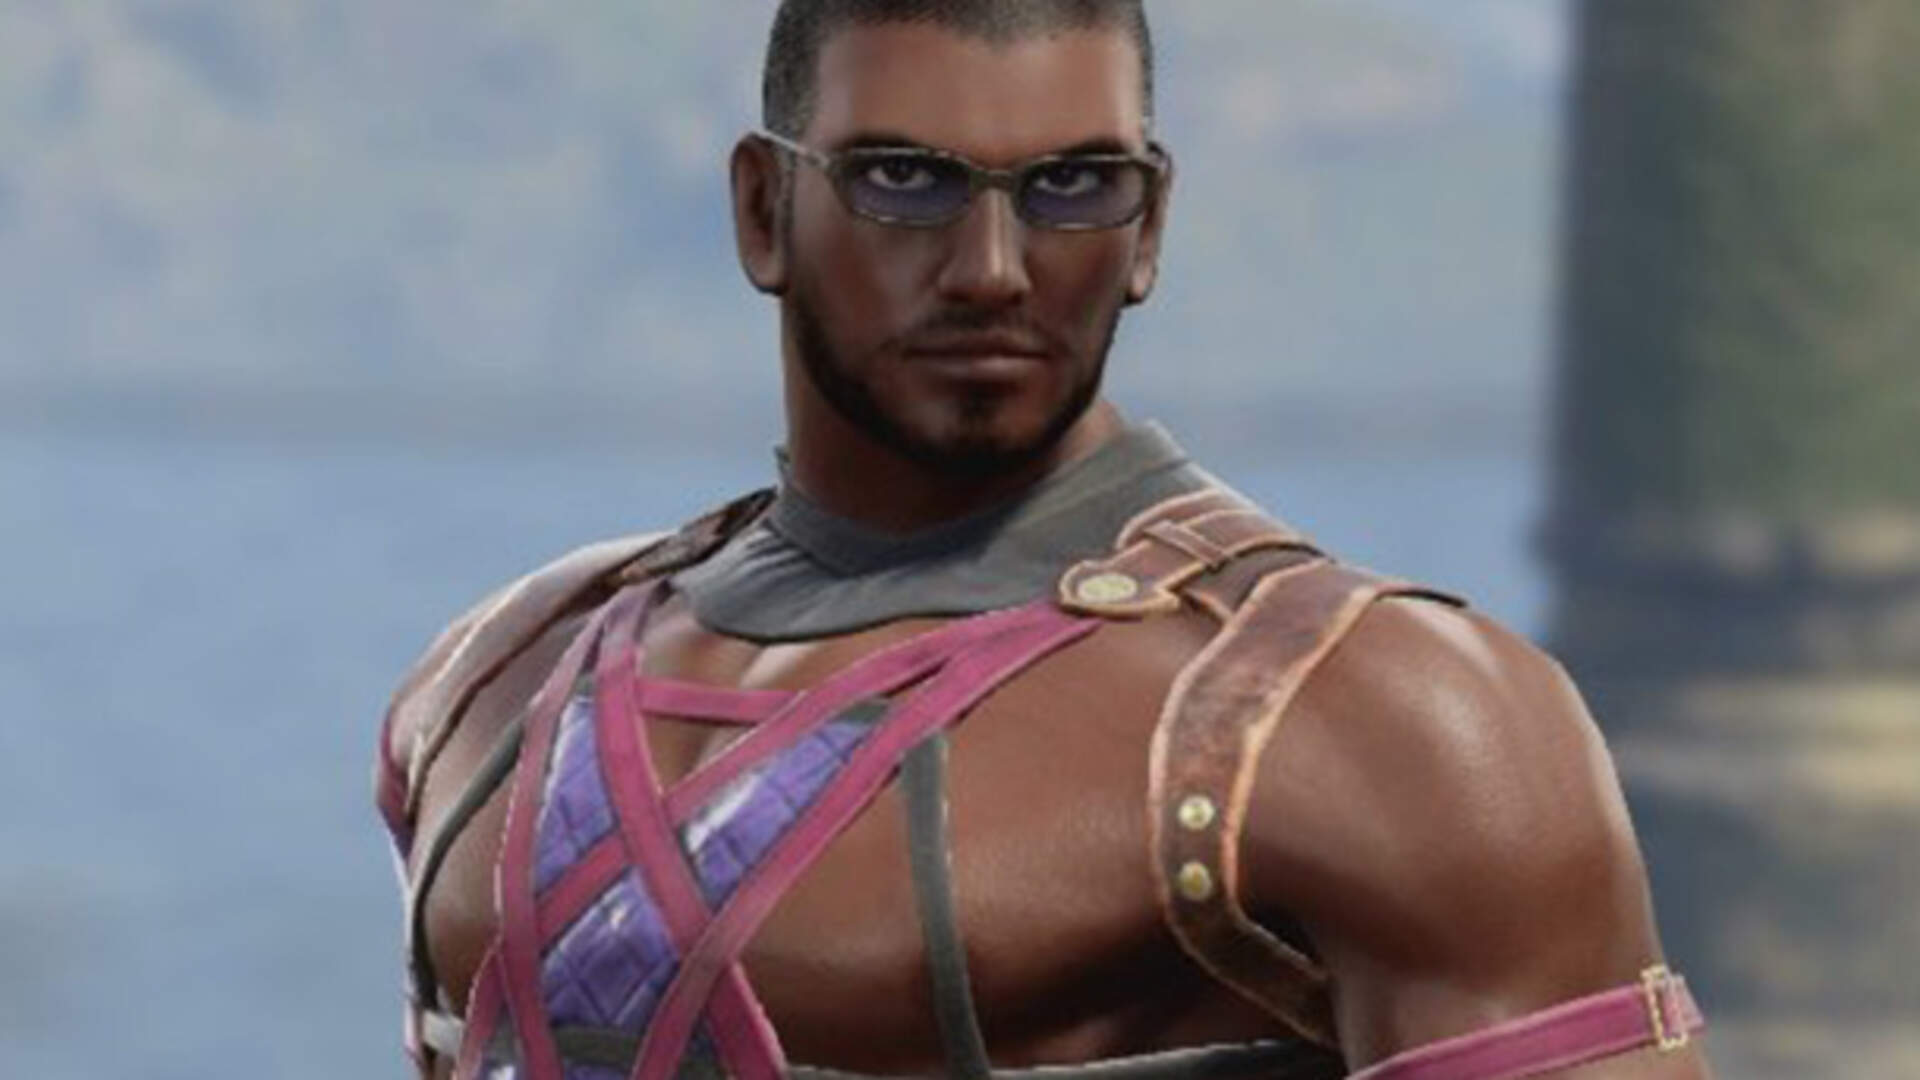 Soulcalibur 6's Nightmare Swole Pikachu and the Rest of Our Favorite Character Creations to Date